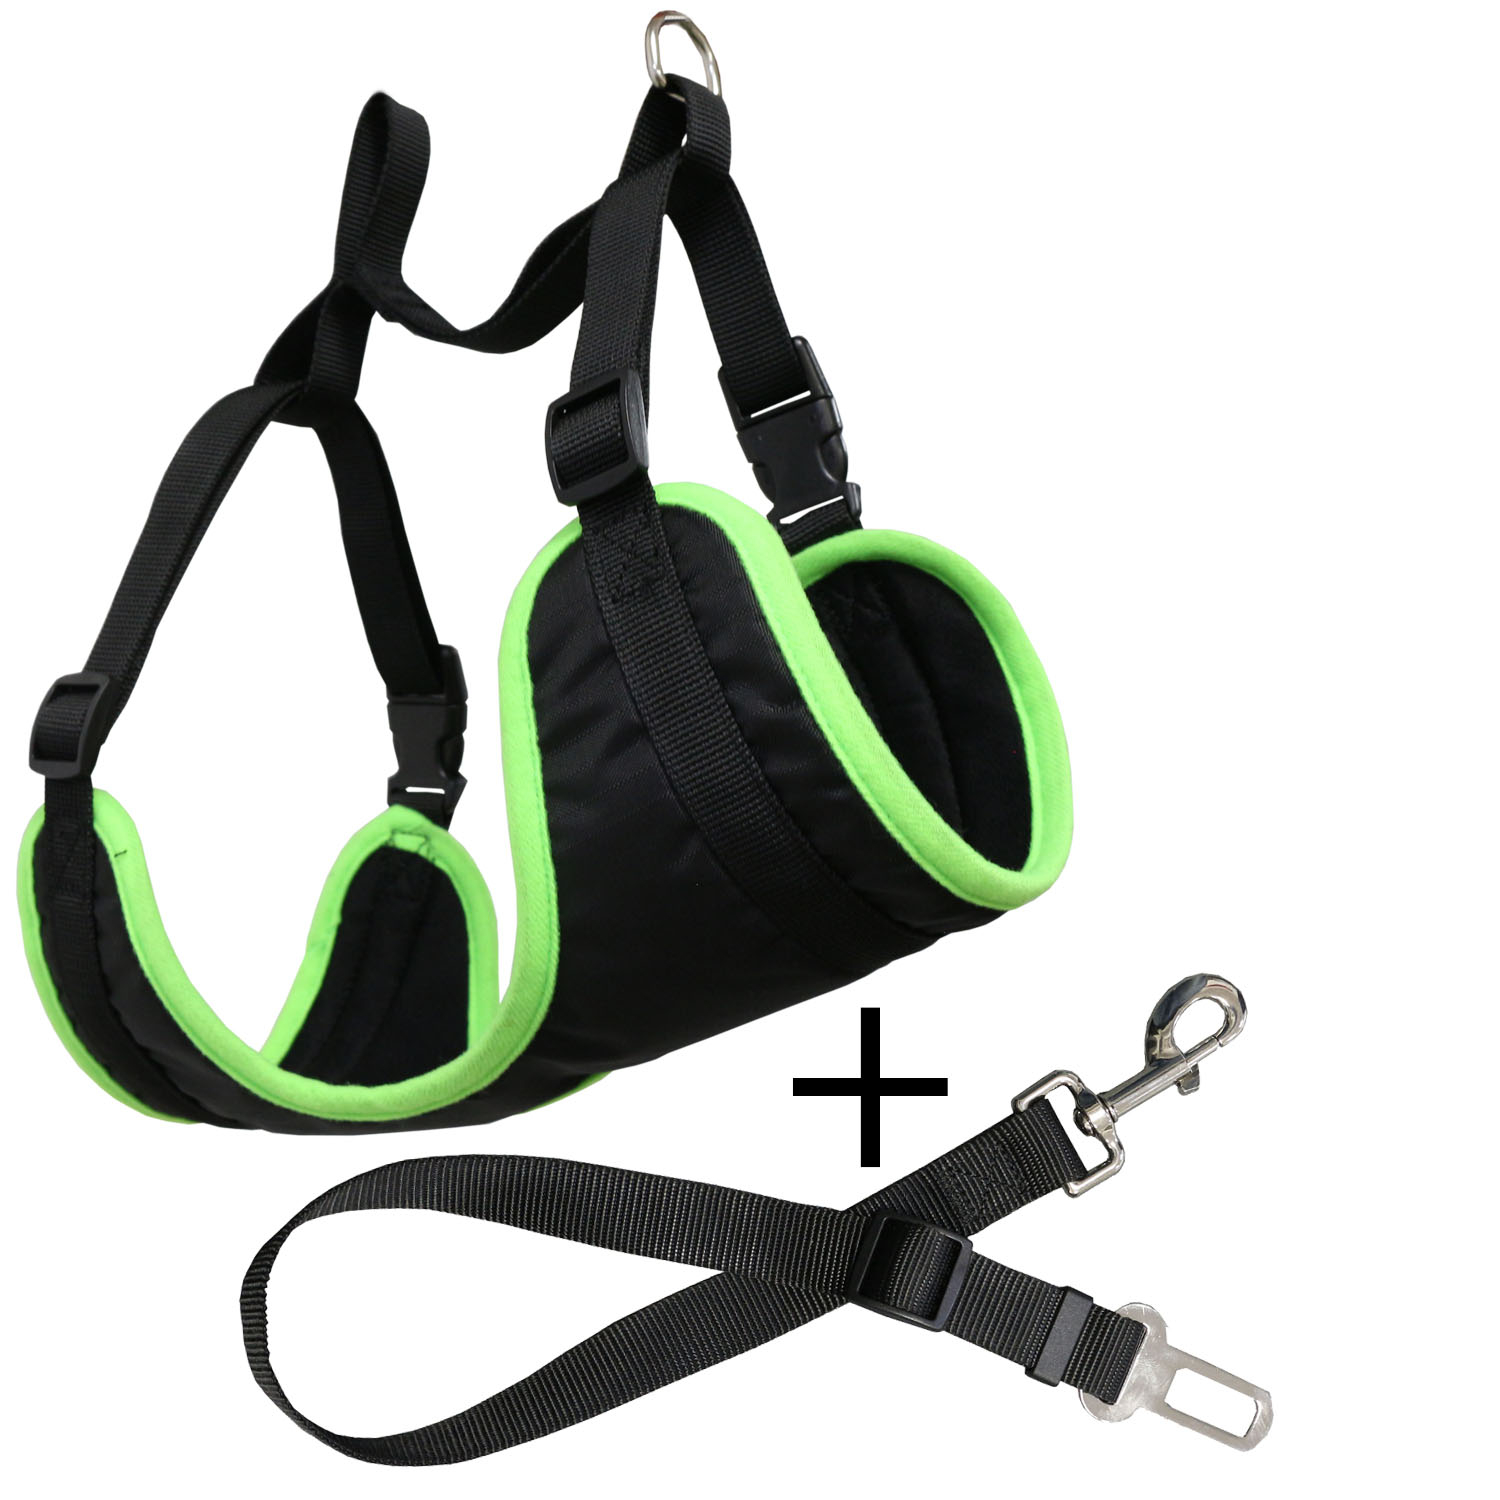 Harness With Car Belt For Dogs Adjustable Yatek, Suitable For Most Vehicles, Durable Material, Such